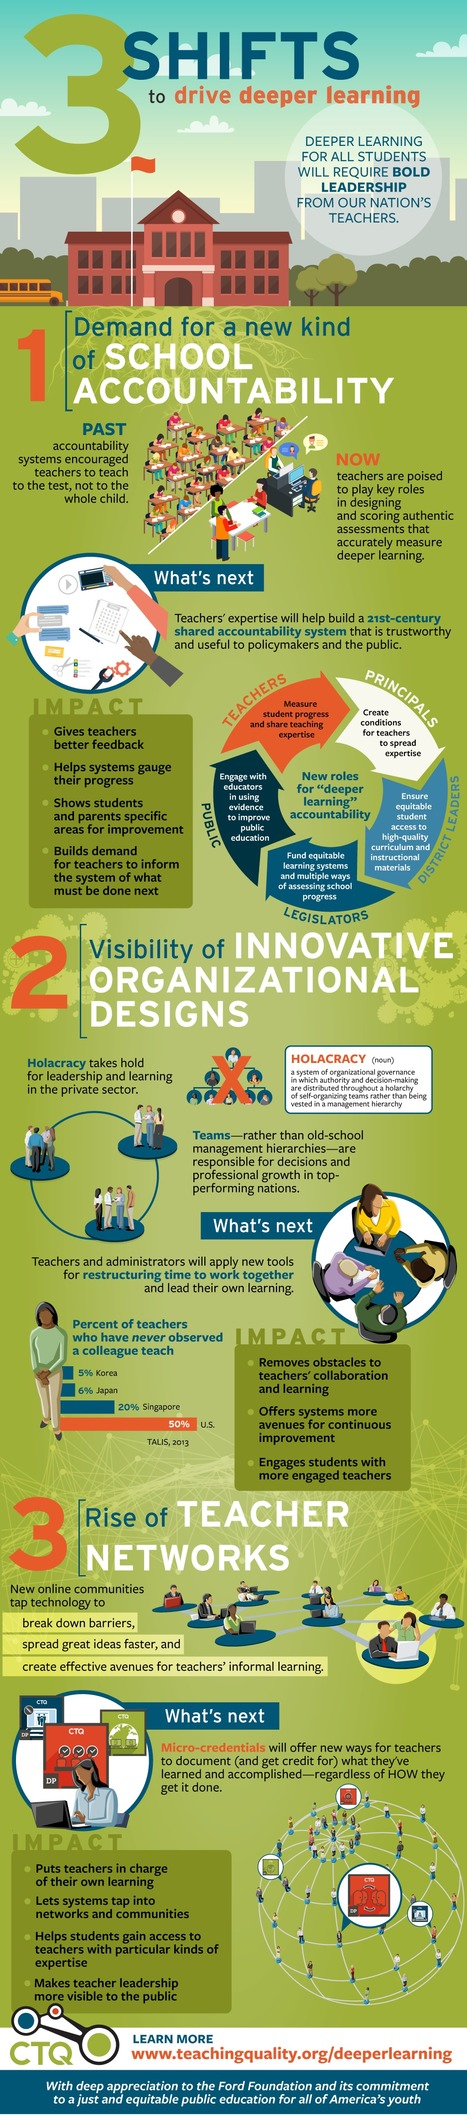 Teacher leadership & deeper learning for all students [#Infographic] | #CTQ #CTQCollab | Studying Teaching and Learning | Scoop.it